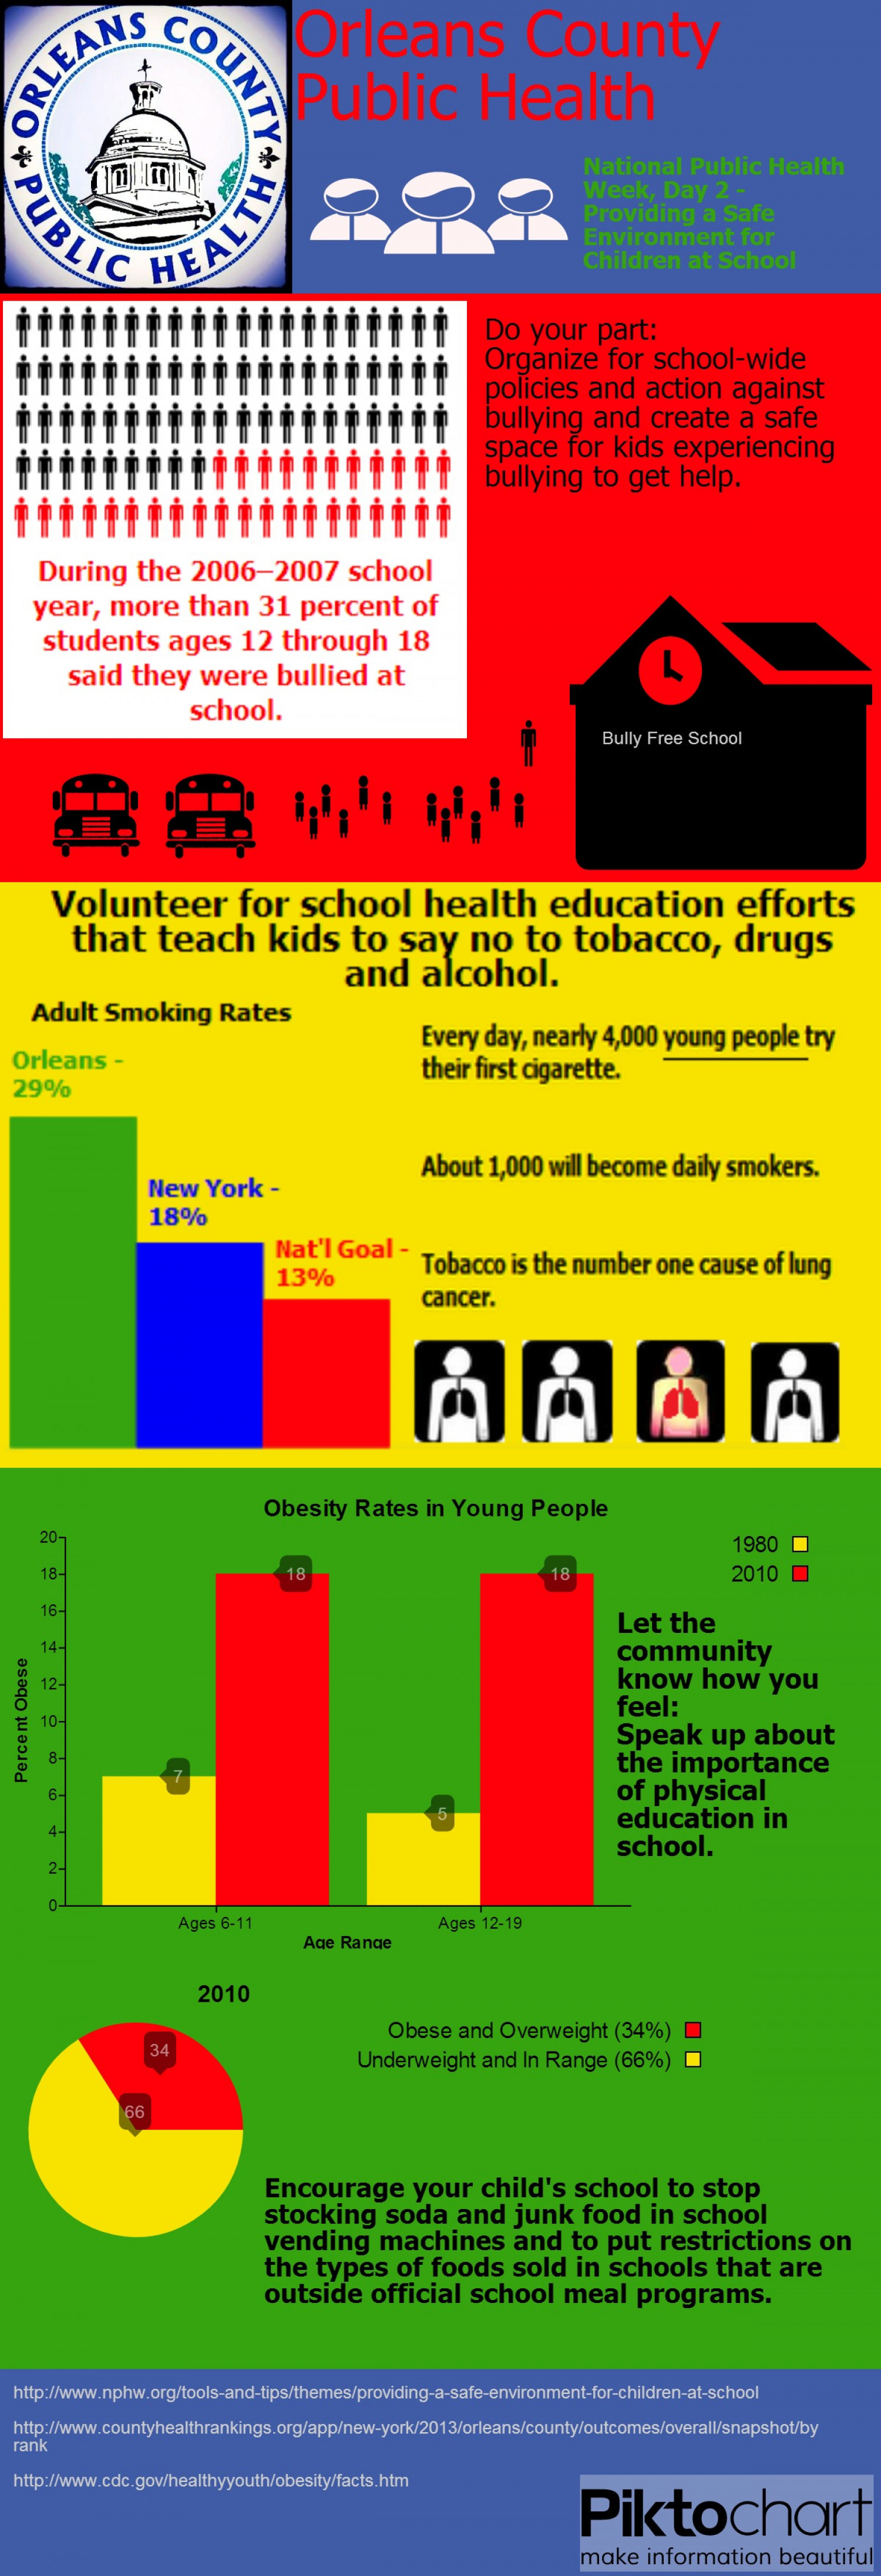 National Public Health Week, Day 2 Infographic